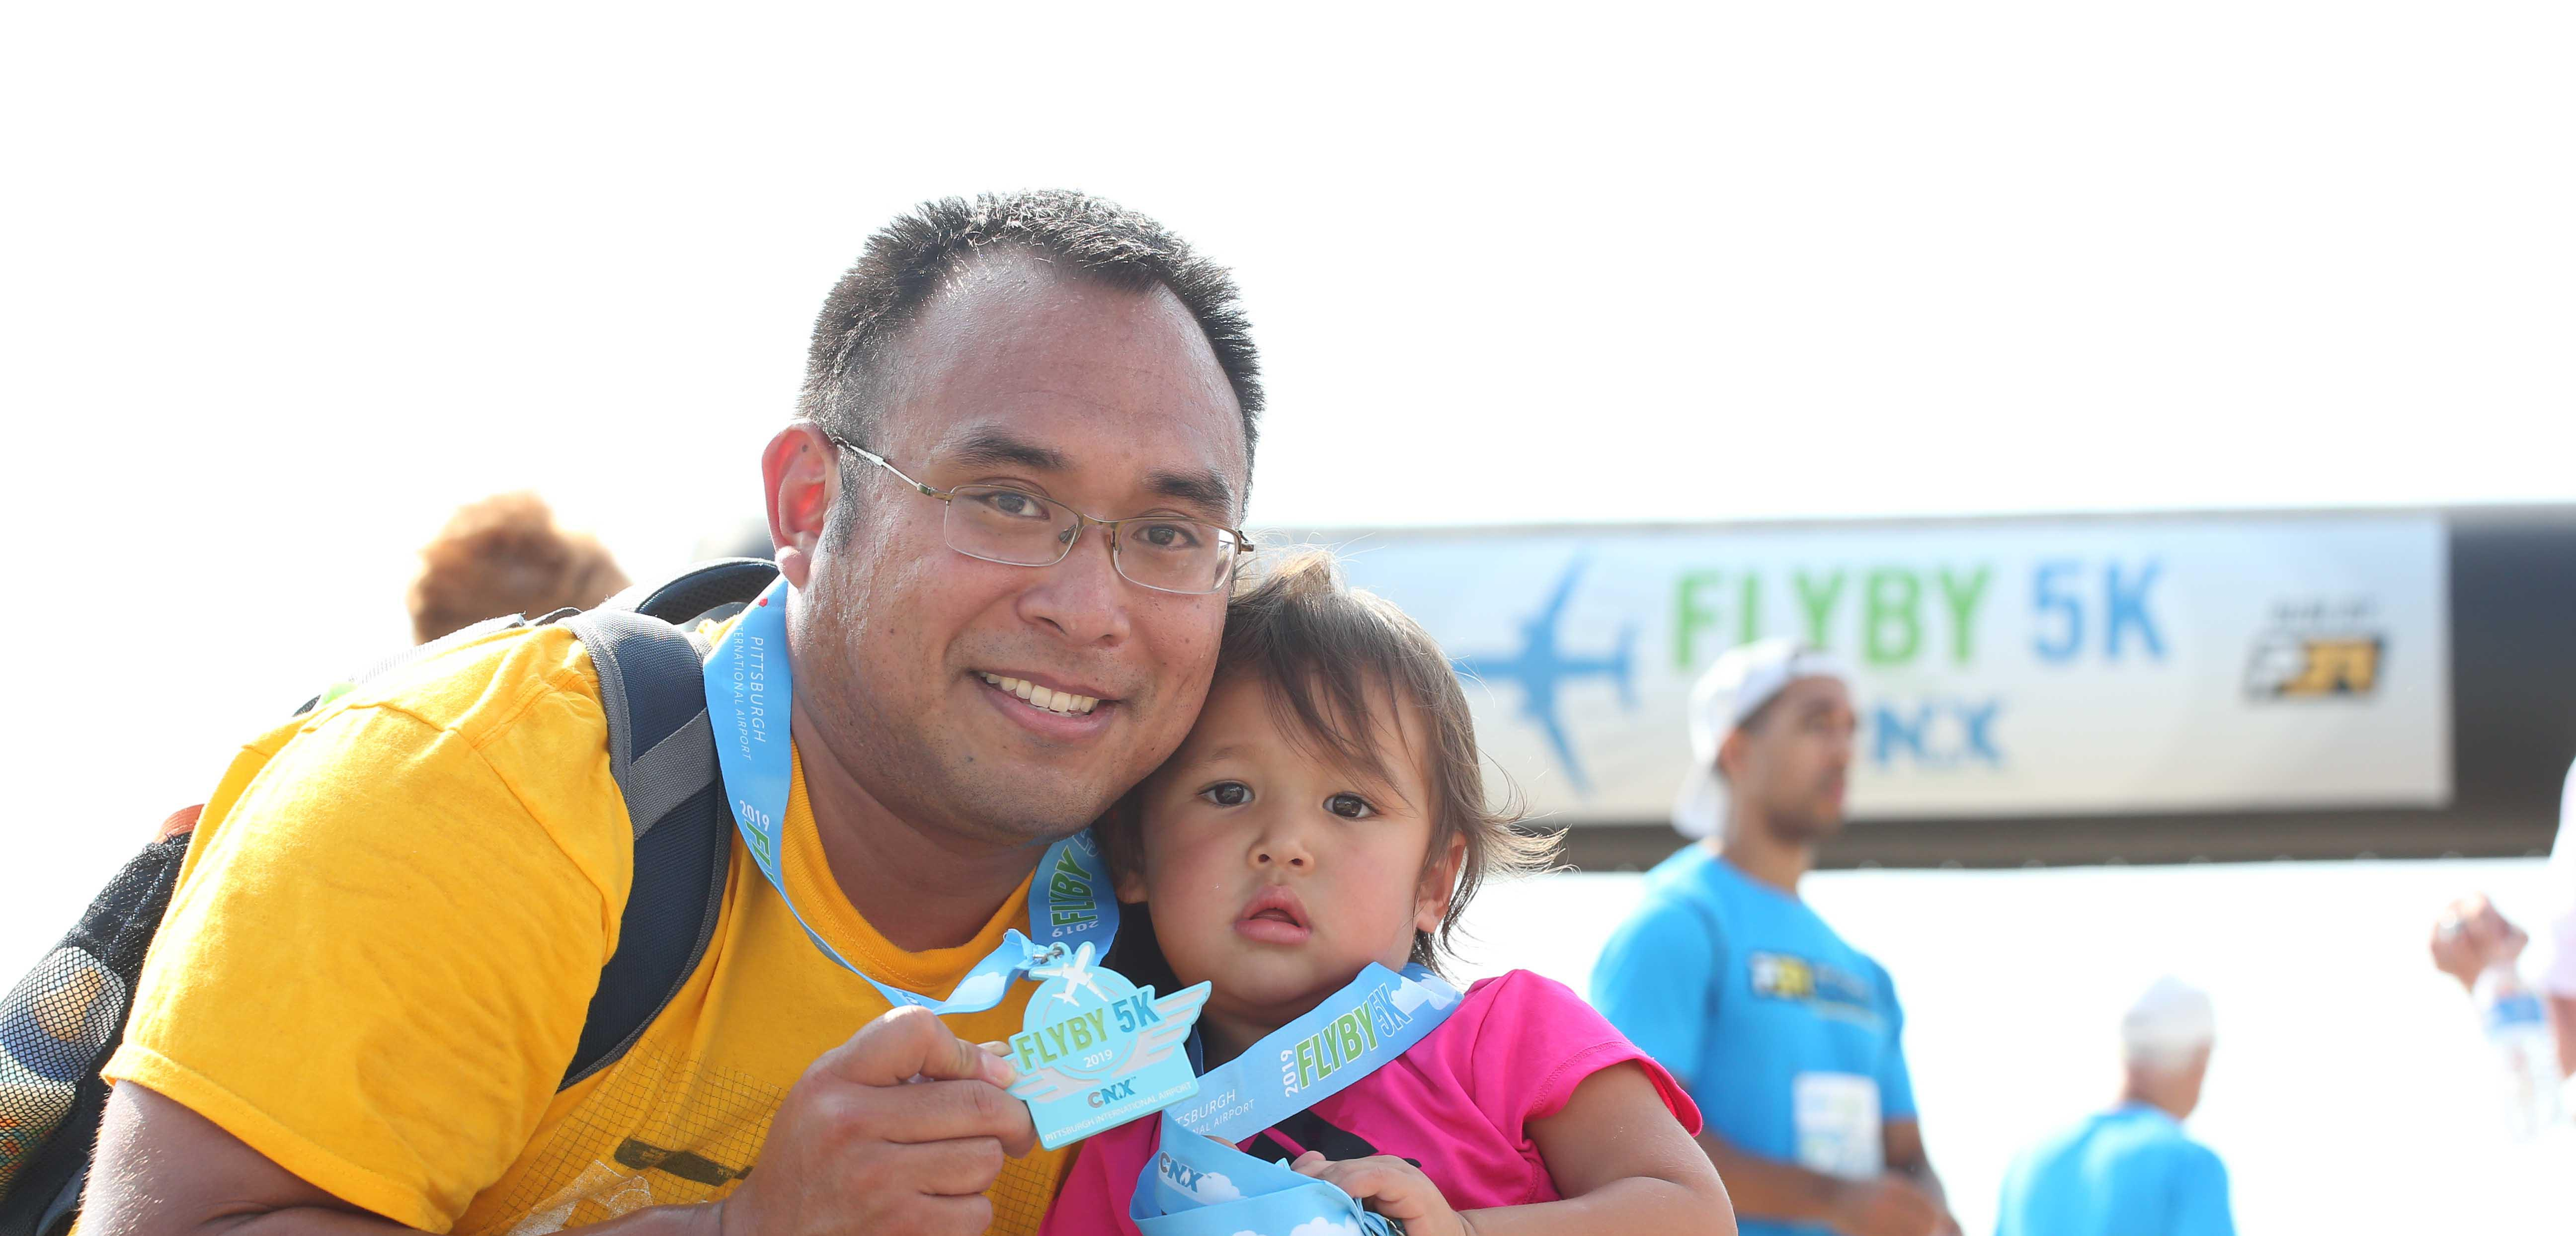 middle-aged man holding very young child as they smile with their Fly By 5K medals